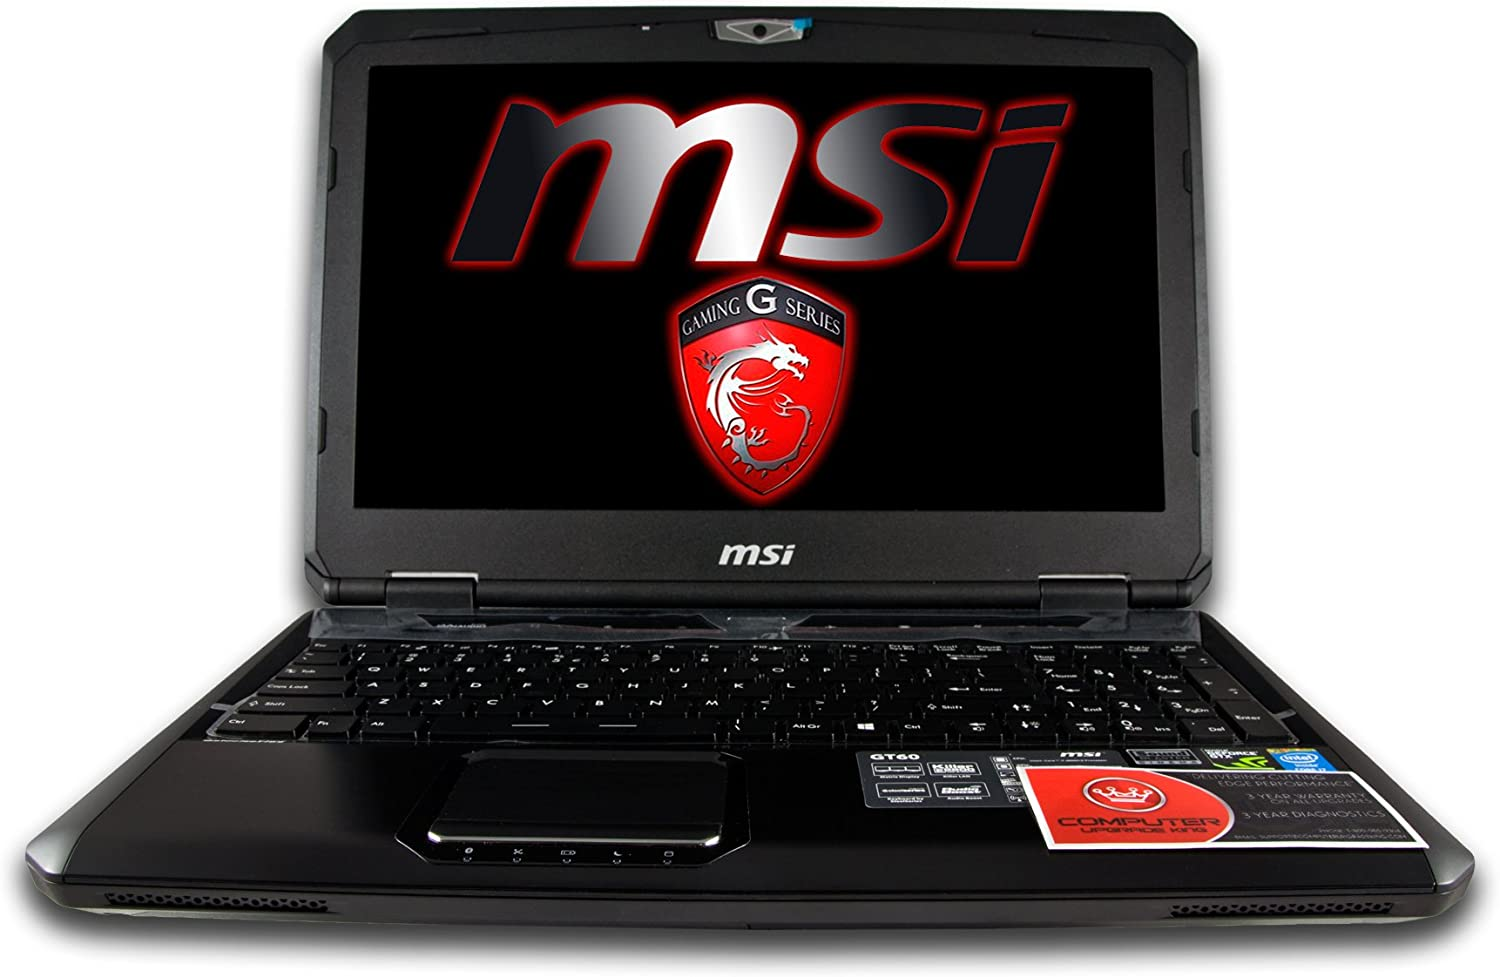 "MSI GT60 Dominator 424 15.6"" i7-4800MQ 16GB 1TB 7200rpm Nvidia GTX 870M 3GB Full HD W8.1 Notebook"